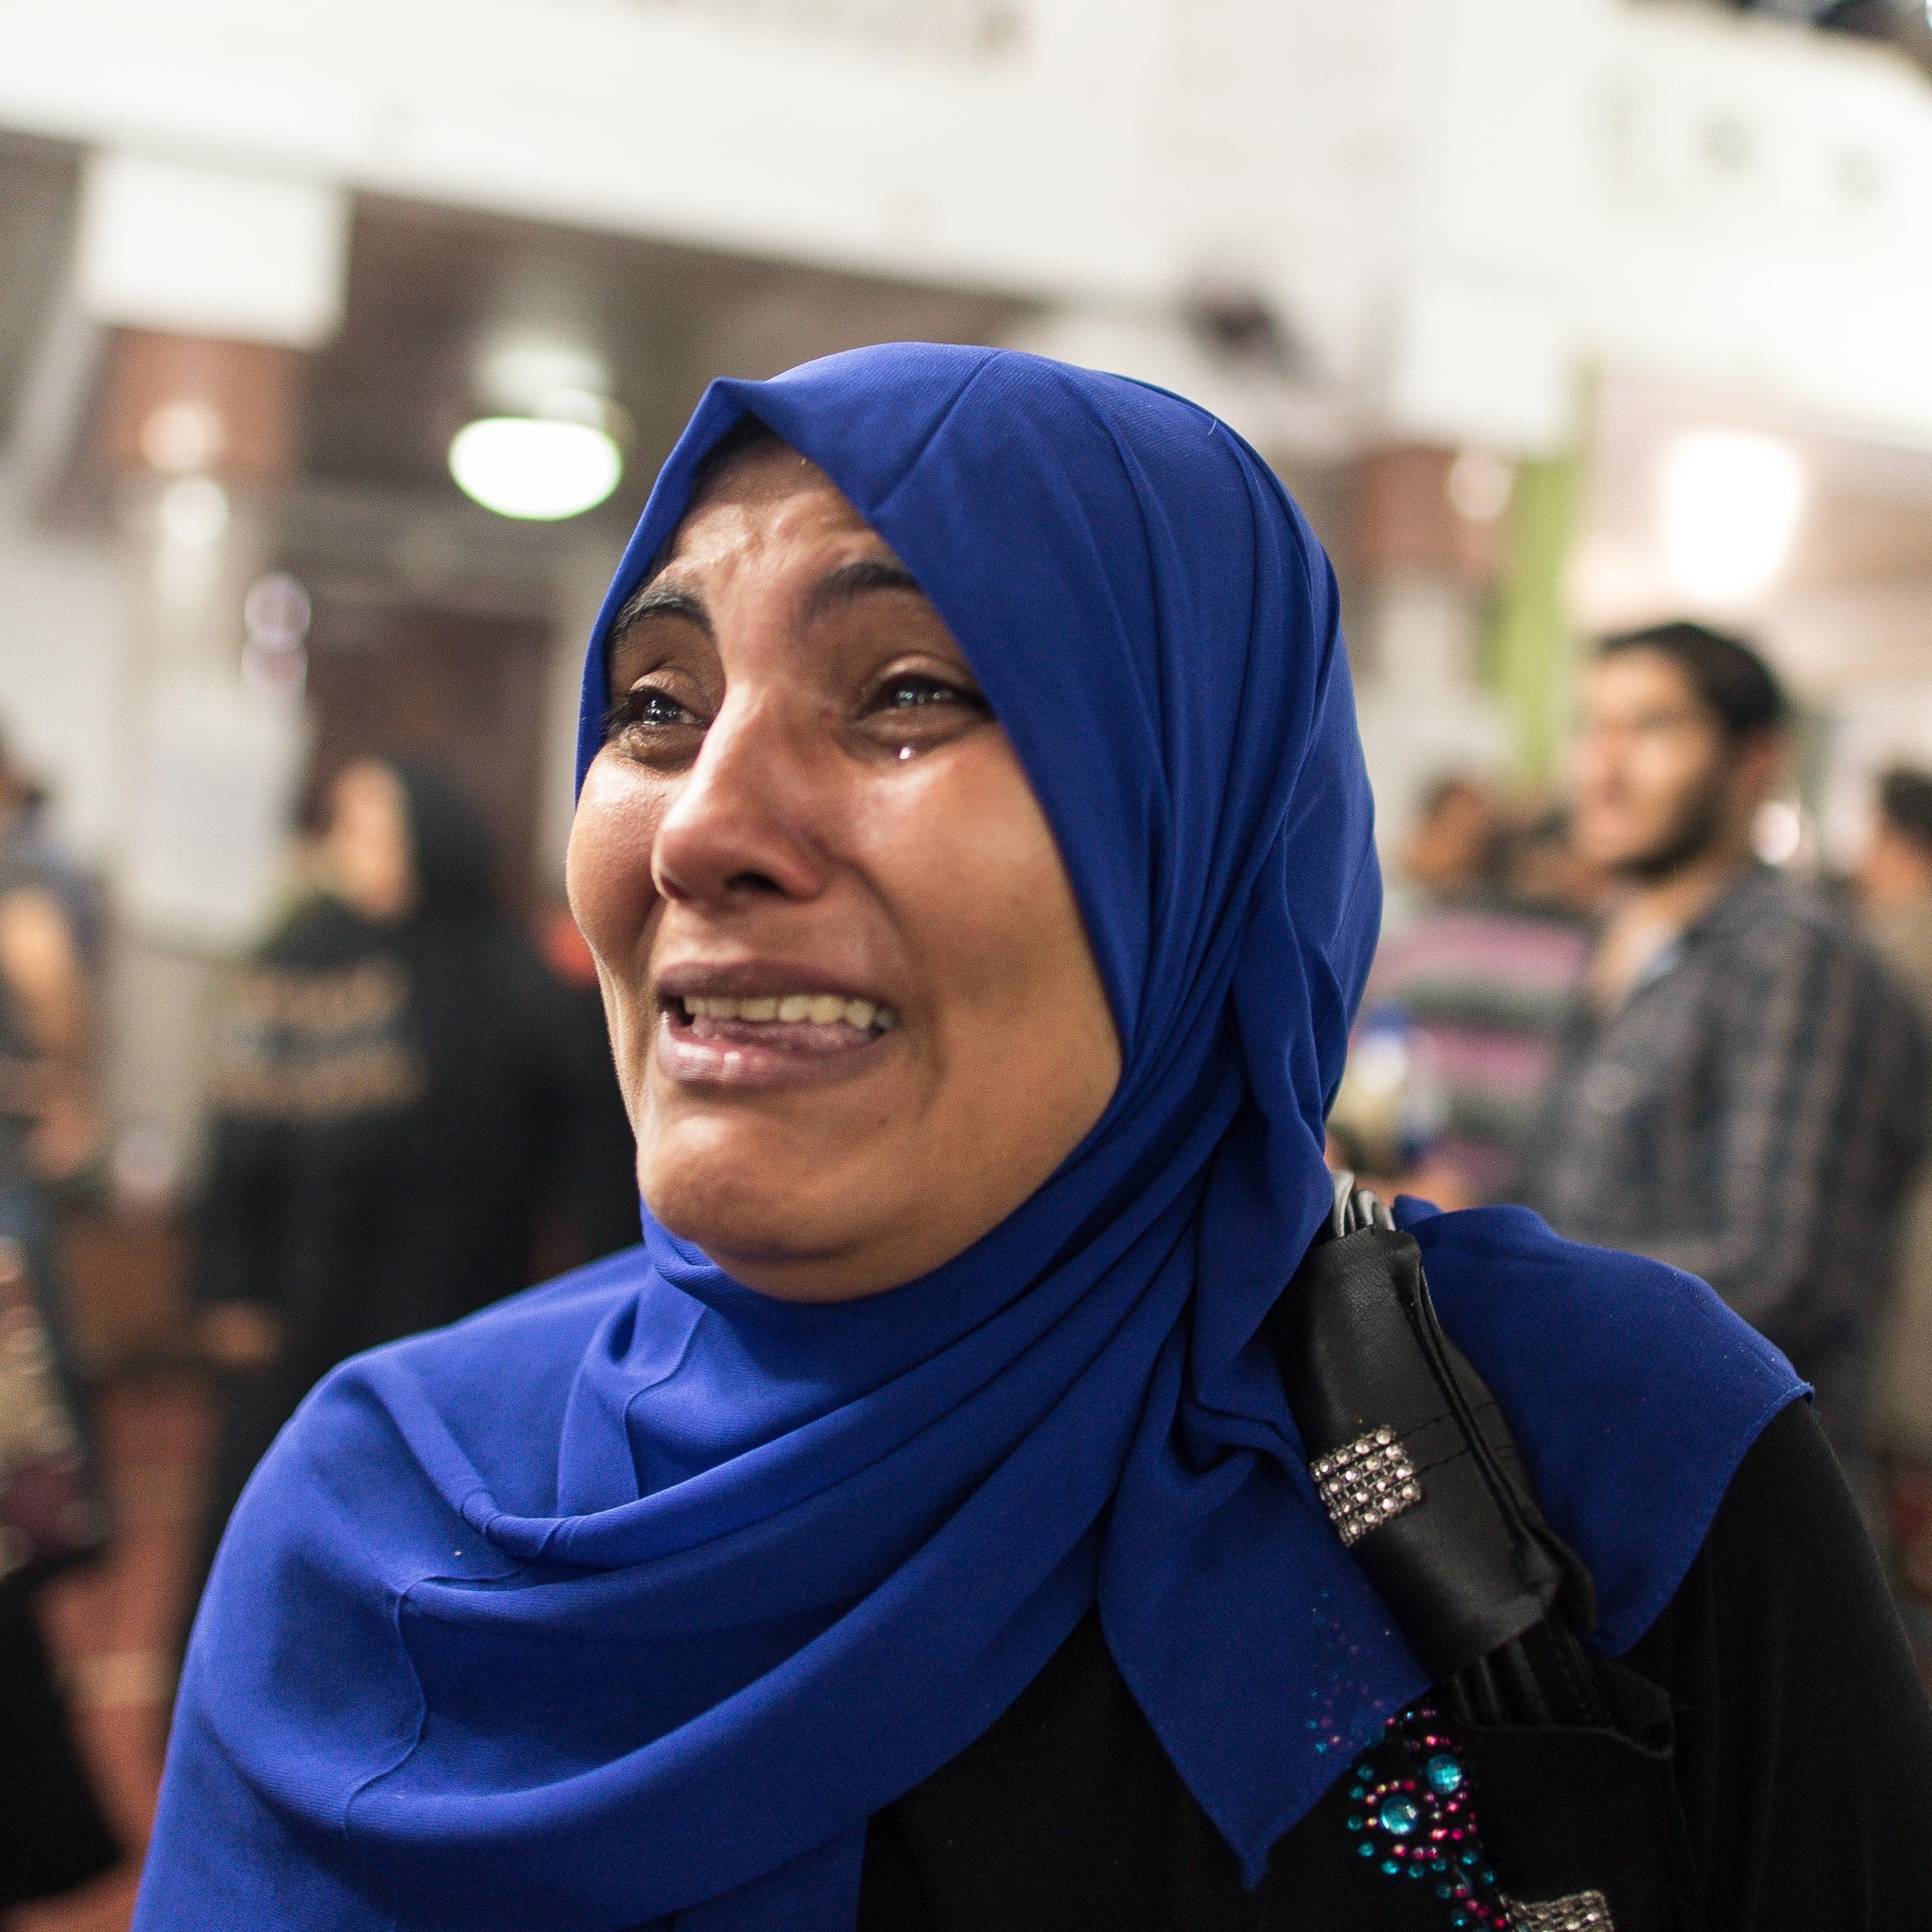 An Egyptian woman cries for her dead relative at a mosque in Cairo. According to the latest estimates, more than 500 people died and around 3,500 were wounded.